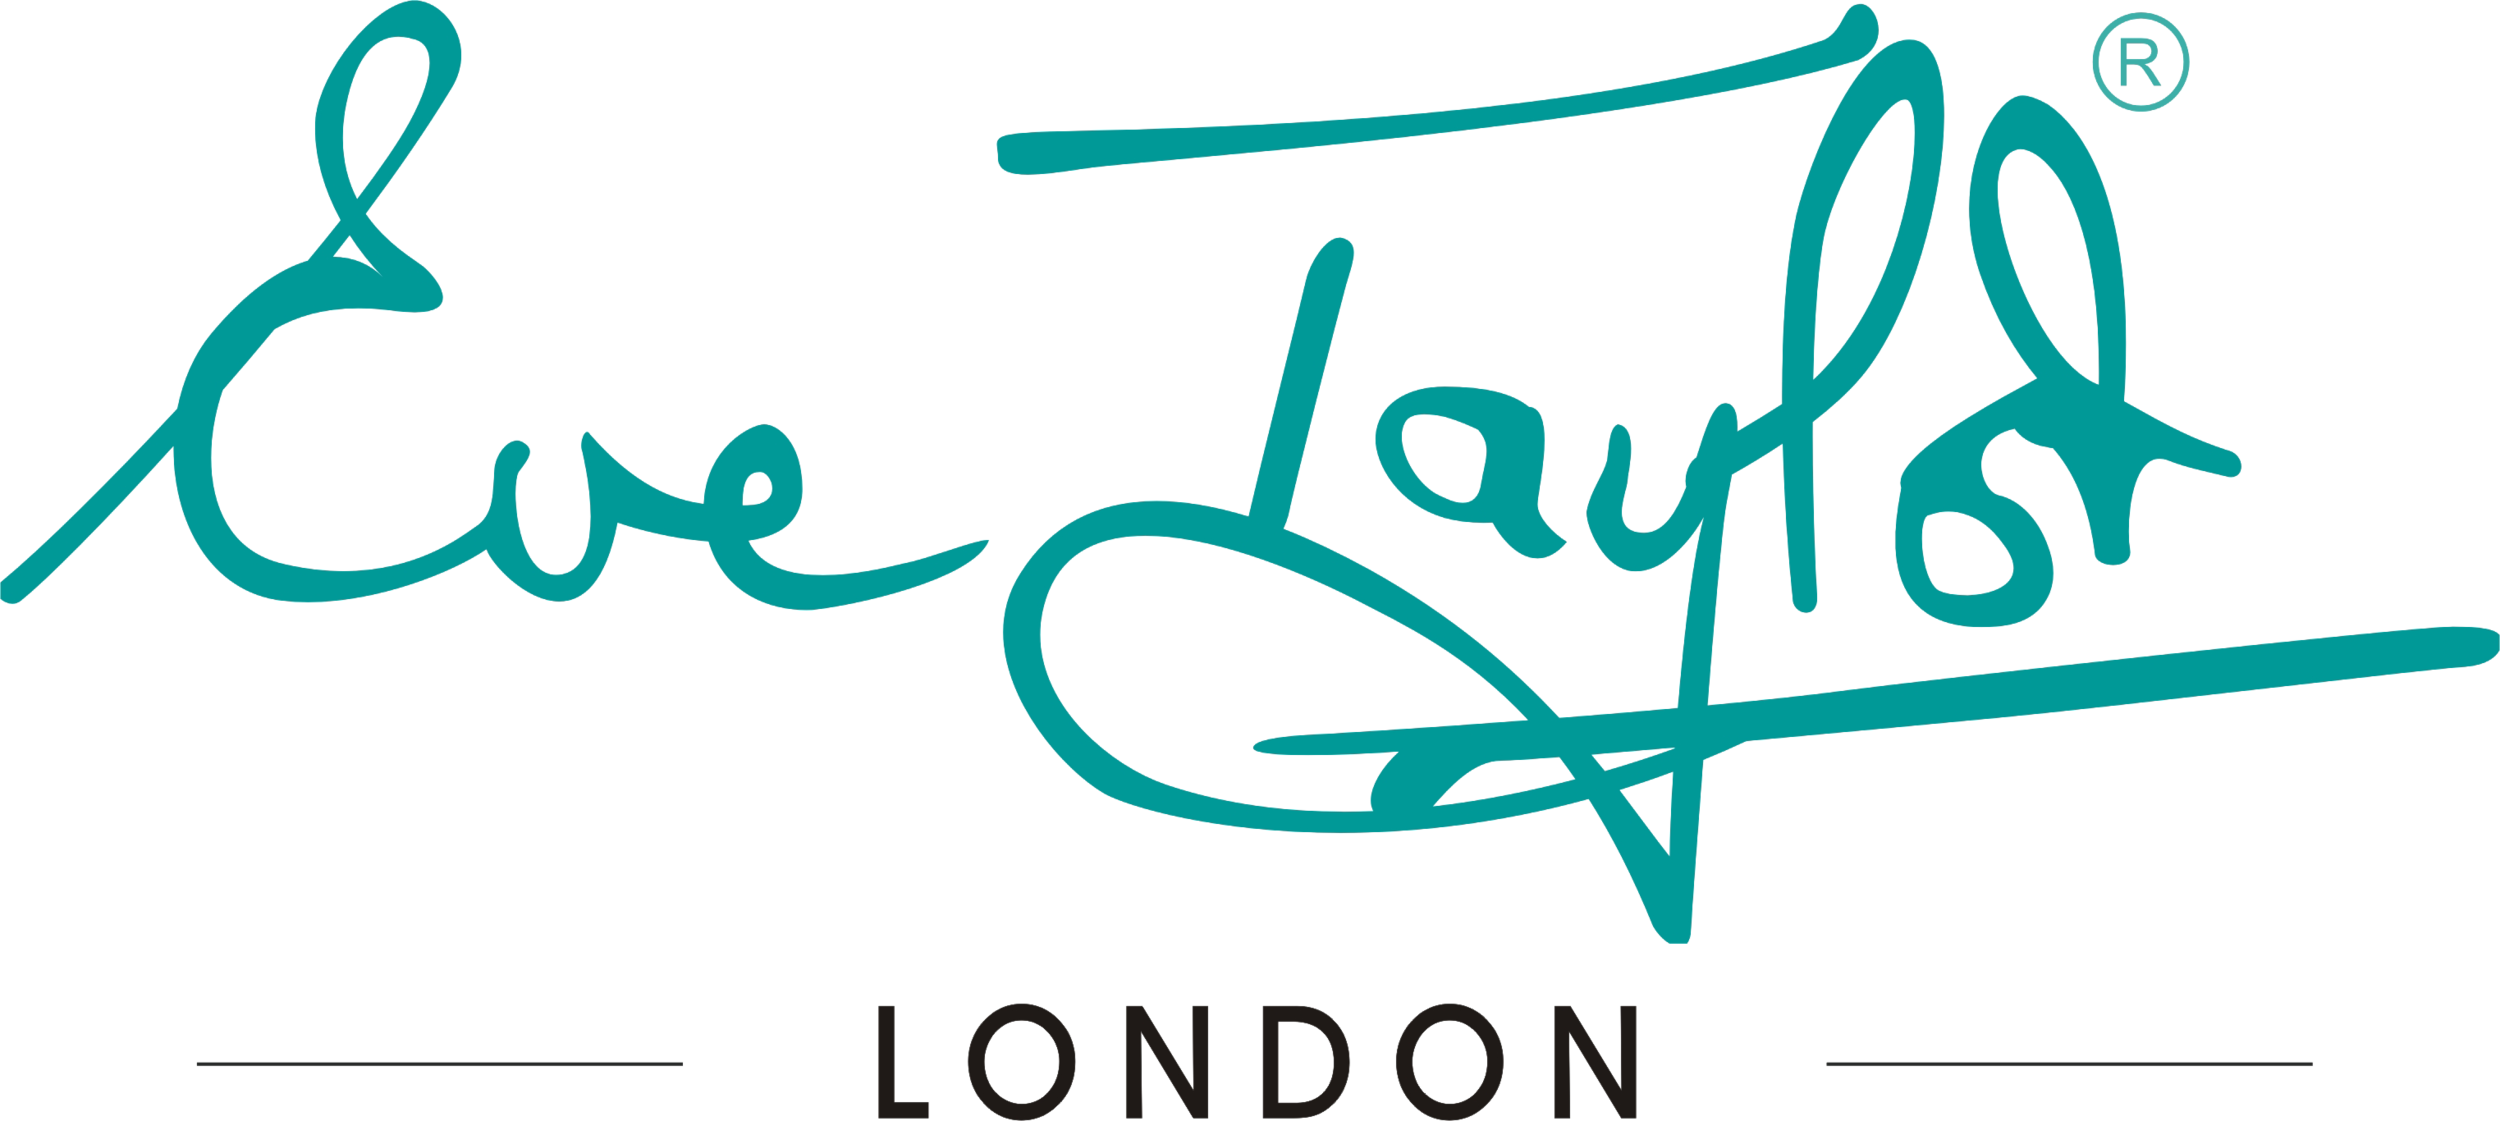 Eve Taylor London logo